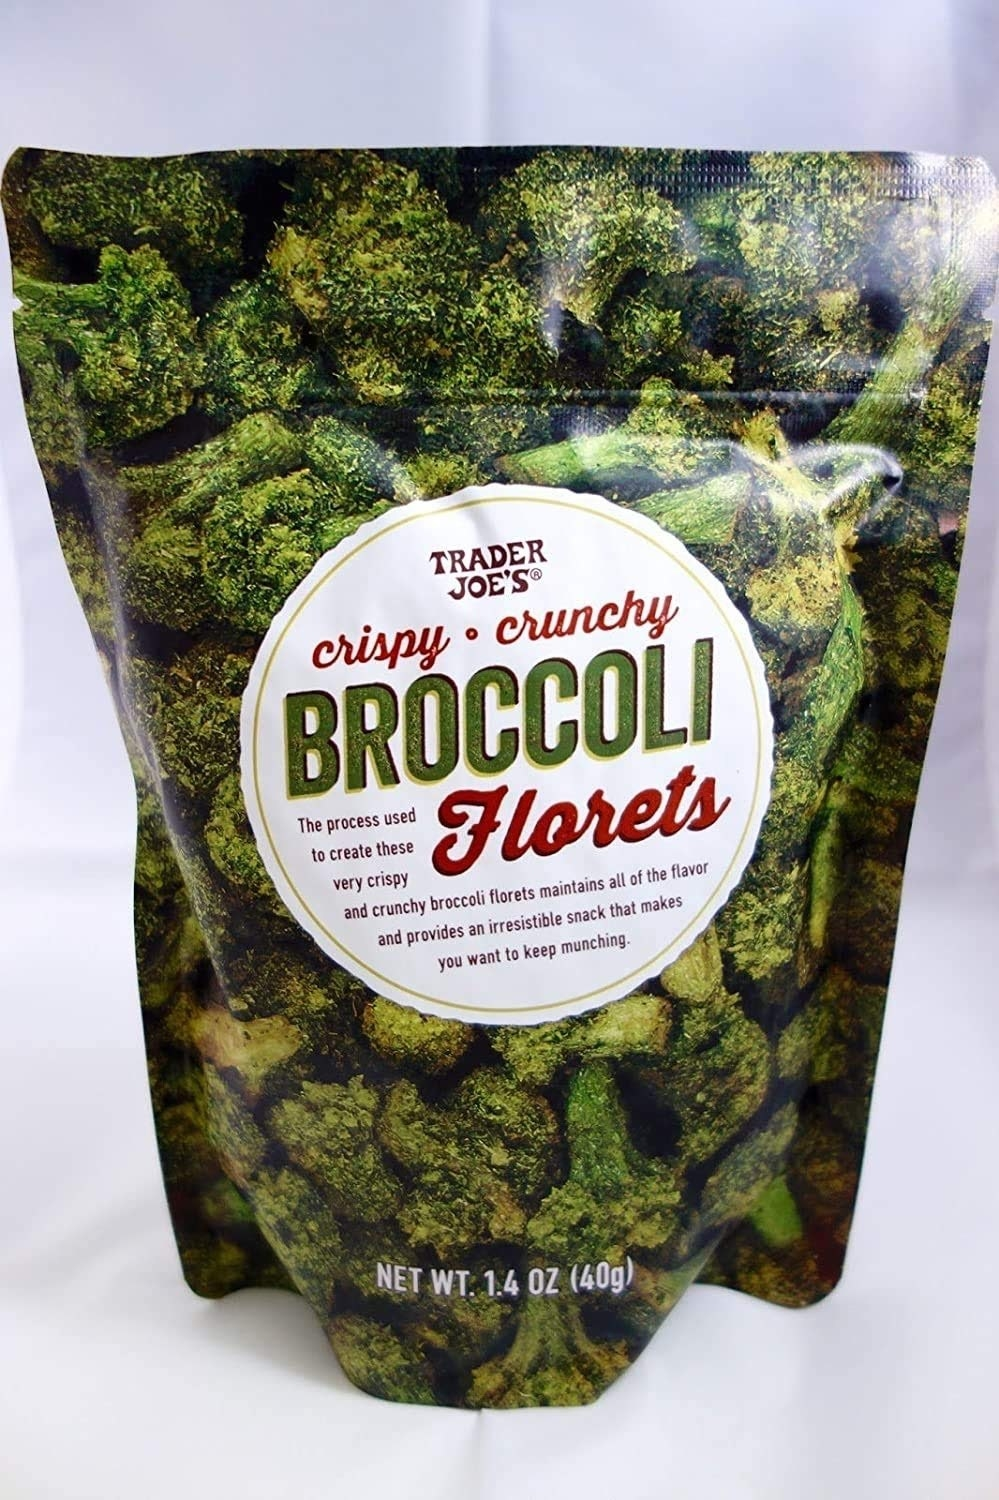 Picture of a bag of Trader Joe's crispy crunchy broccoli florets